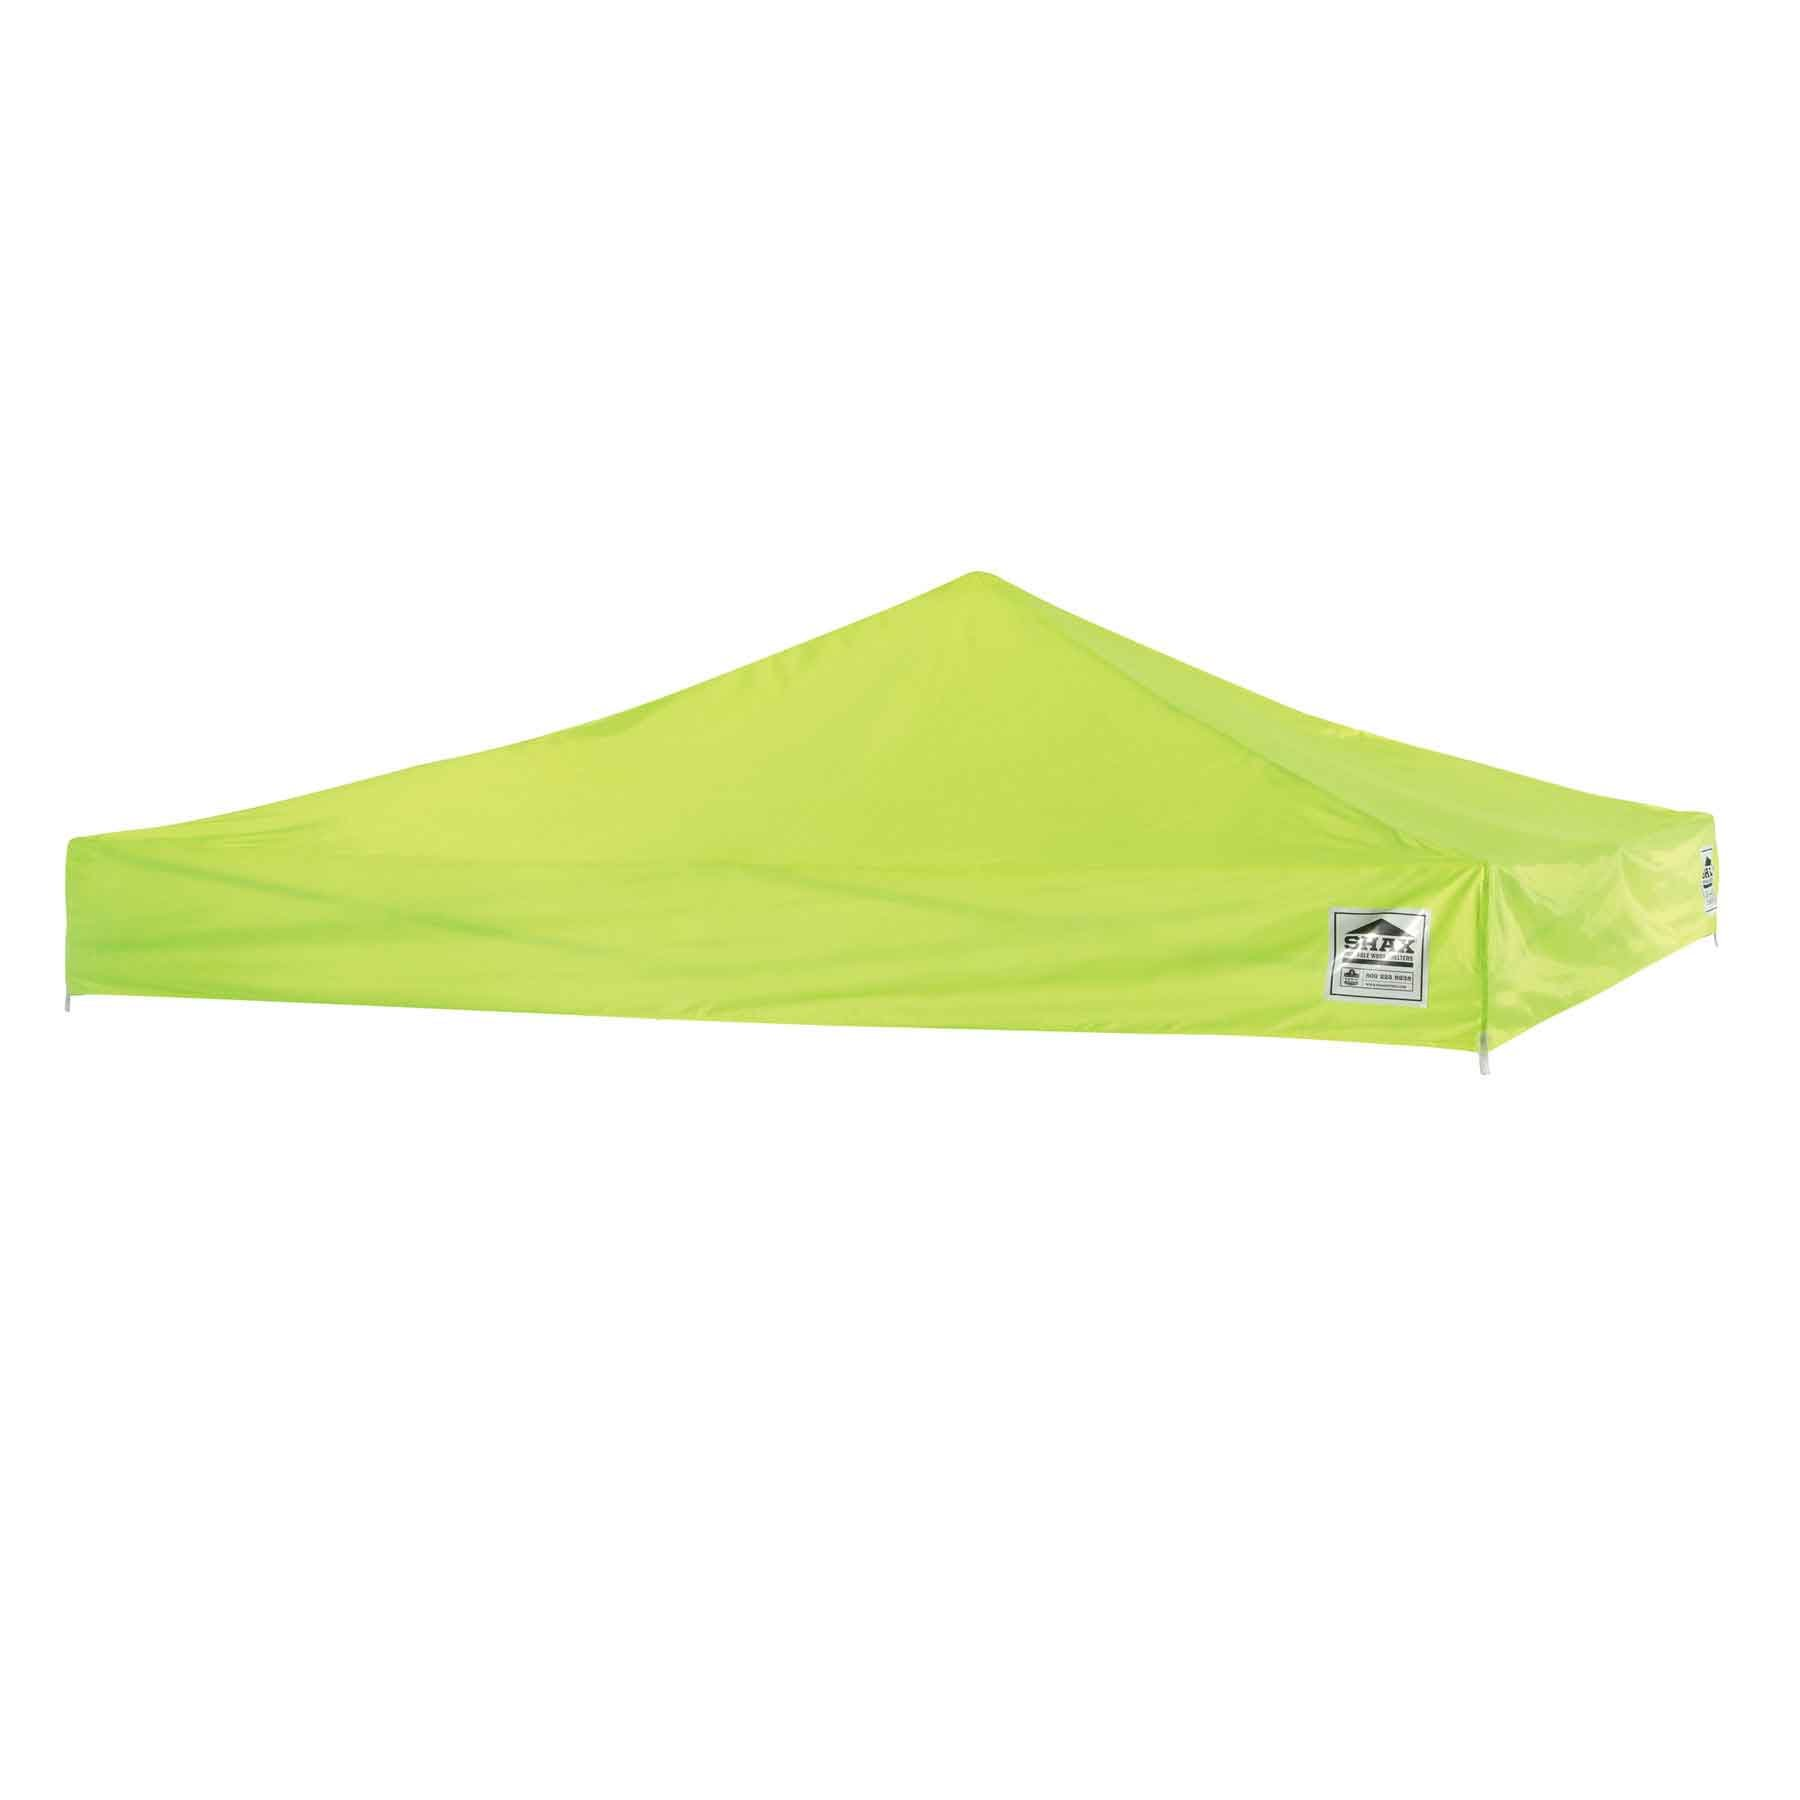 SHAX 6010C Replacement Canopy, 10' x 10', Lime